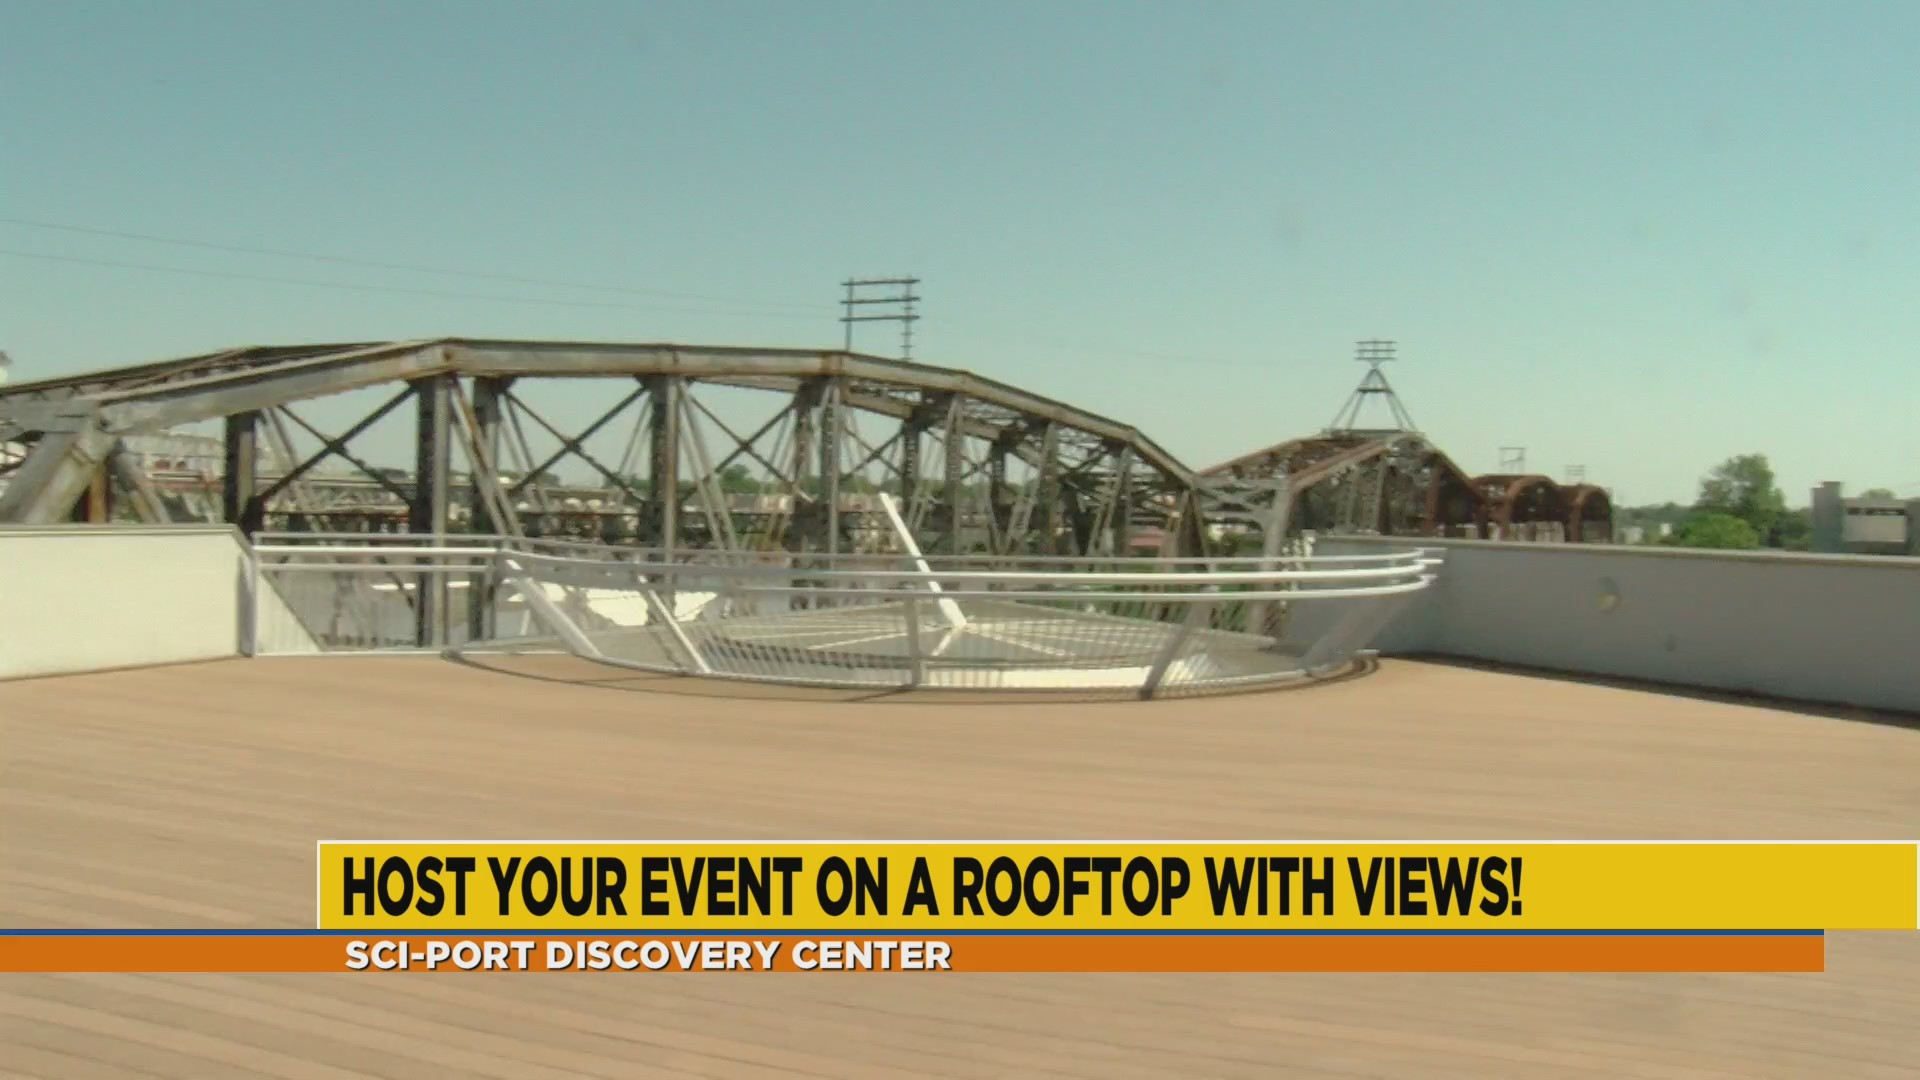 Sci-Port's new rooftop venue for adult events